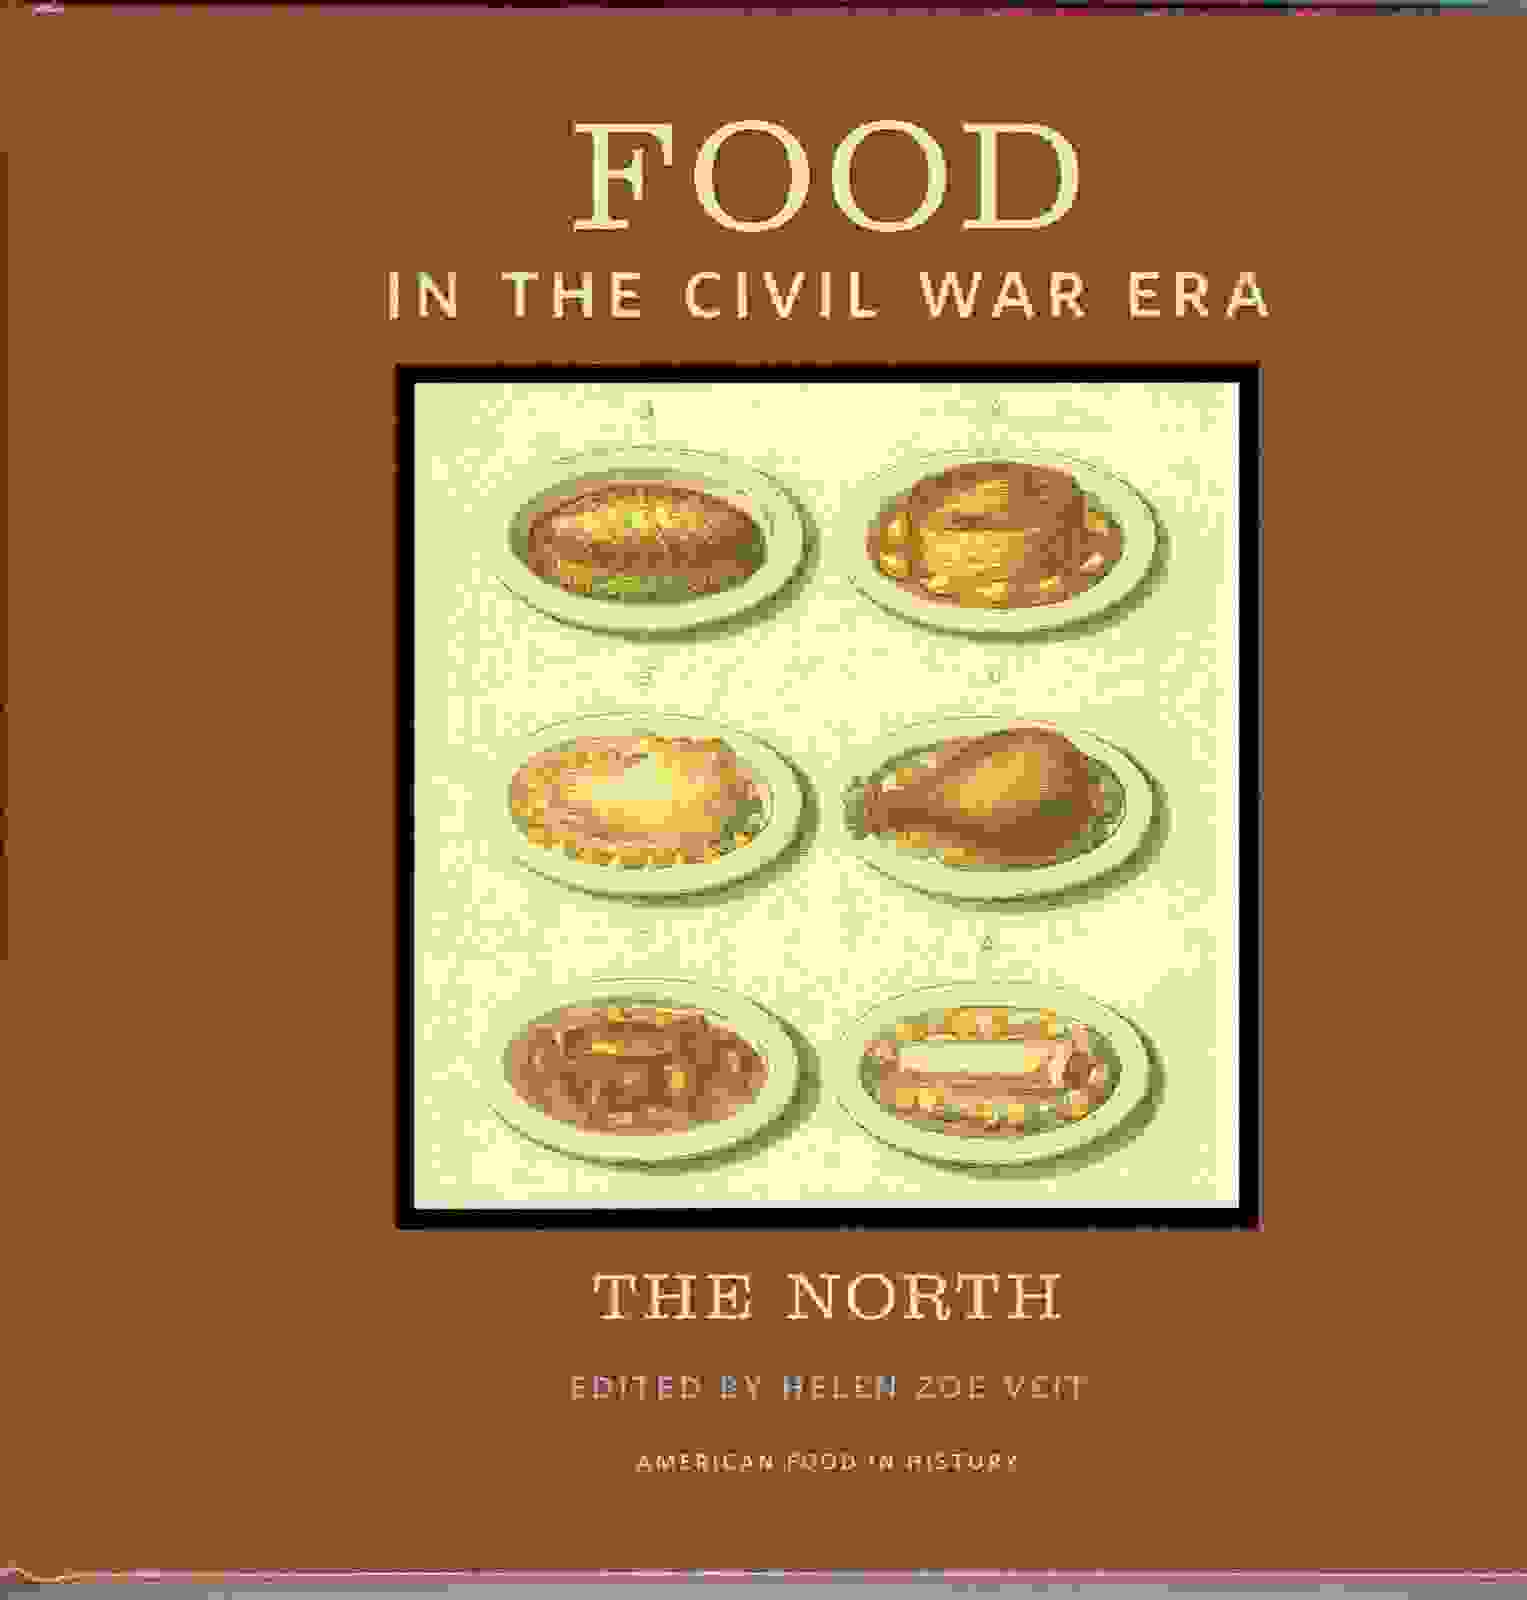 Food in the Civil War Era, The North by Helen Zoe Veit